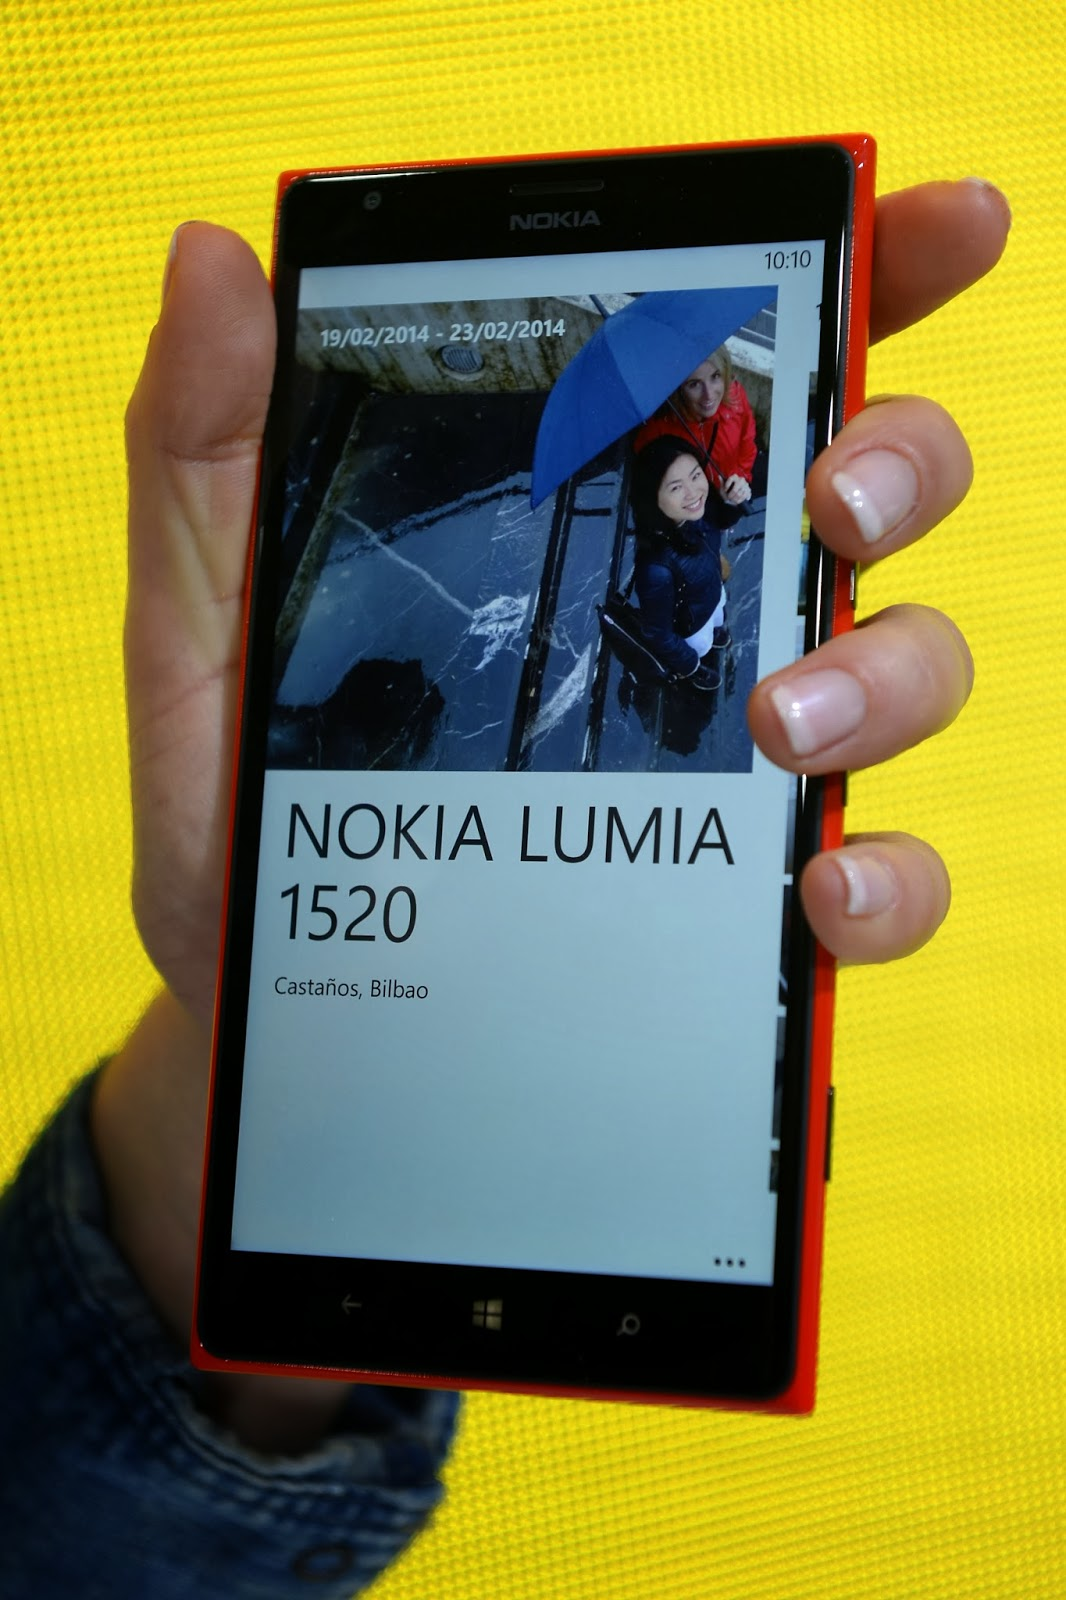 Nokia Lumia, Lumia 1520, Nokia, Pakistan, Technology, IT, Features, Accessories, Price in Pakistan, Smartphone, Mobile, News, Mobile World Congress,